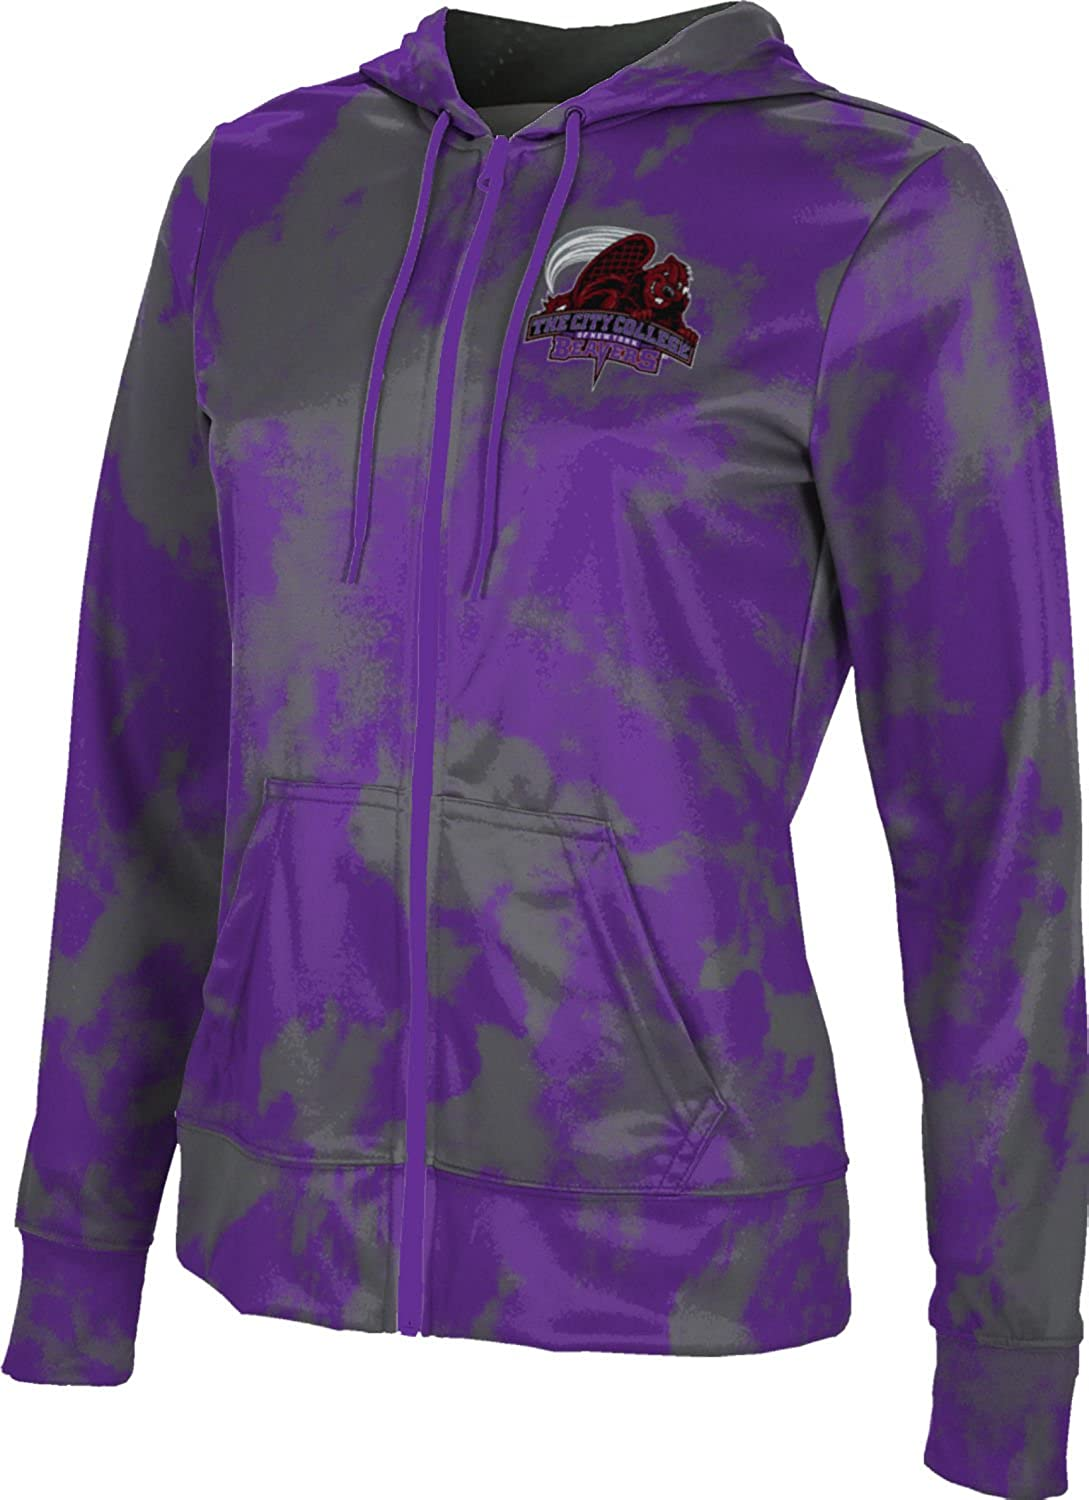 City College of New York Women's Hoodie Sw Zipper Free shipping At the price of surprise anywhere in the nation Spirit School